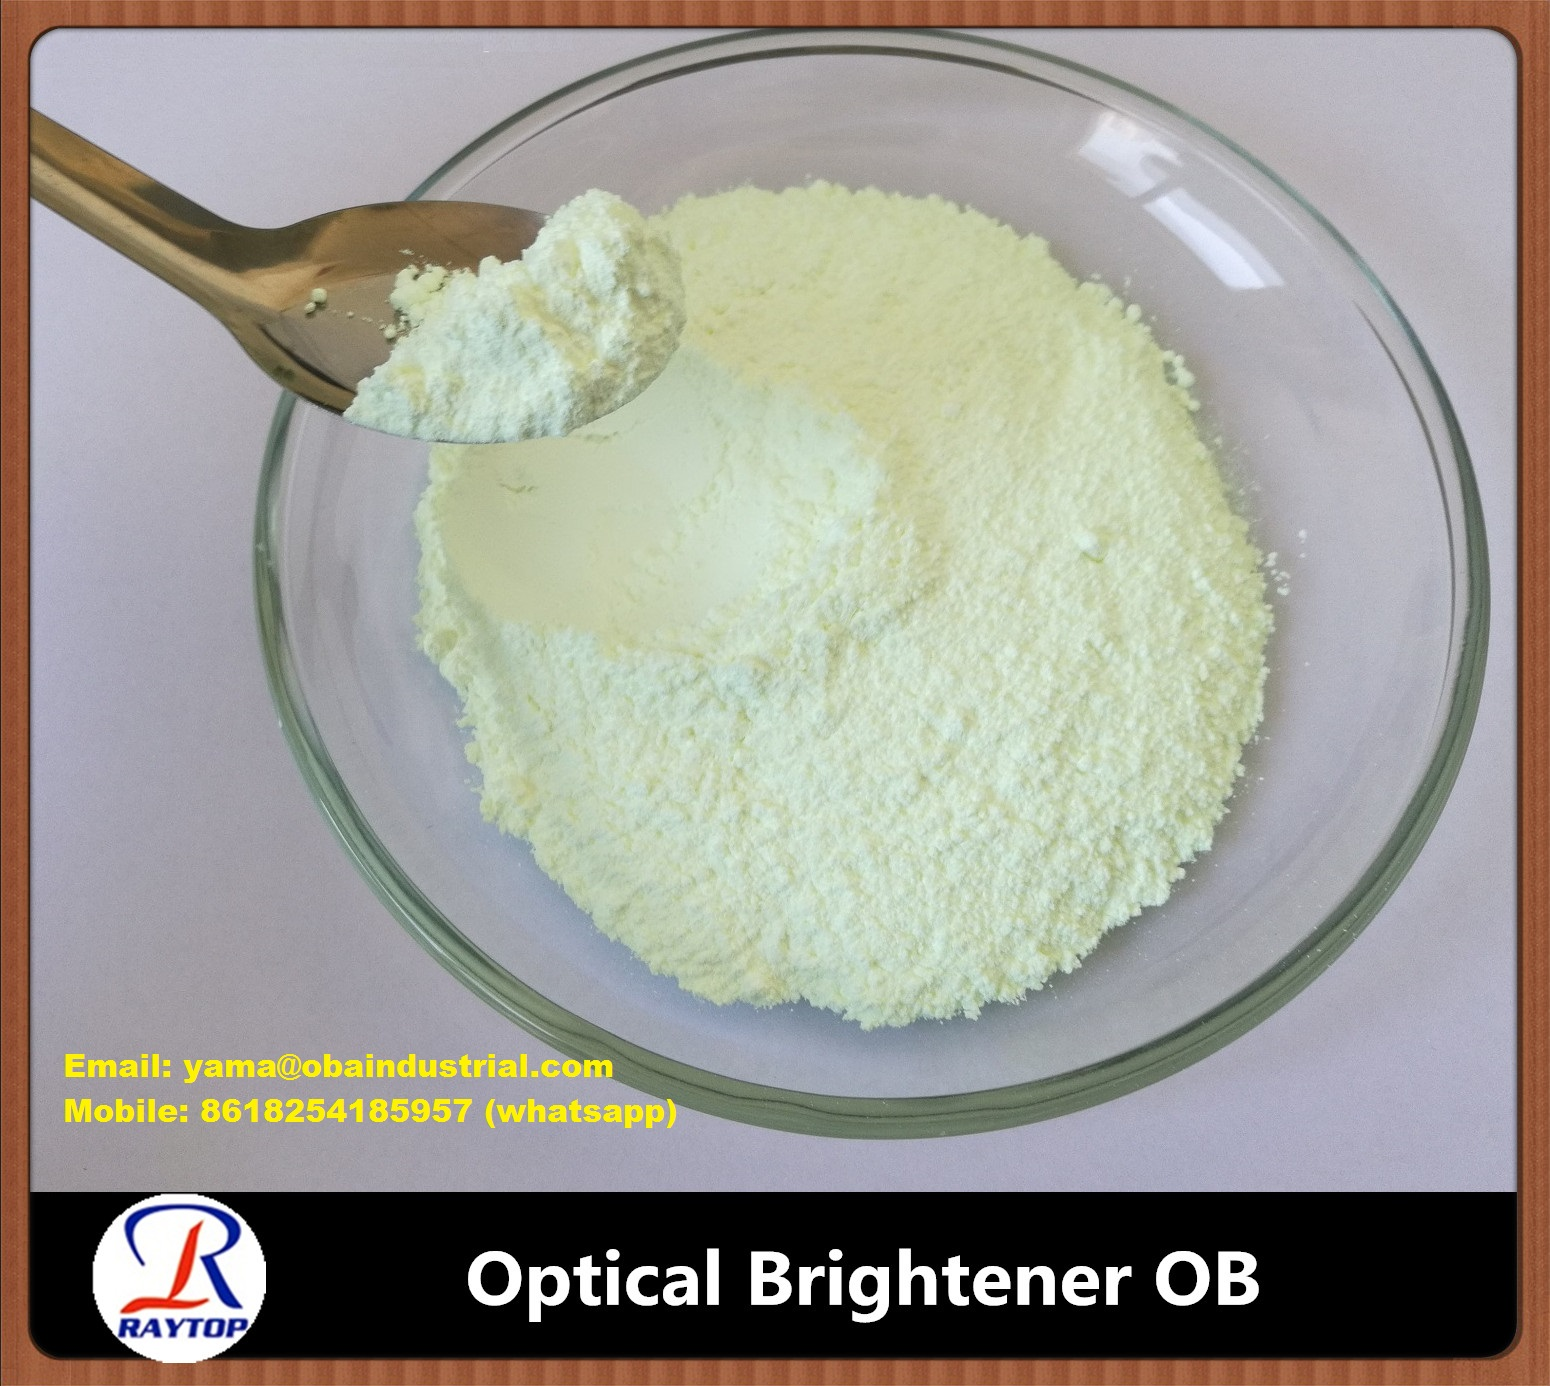 Competitive price for the pure quality of optical brightener OB